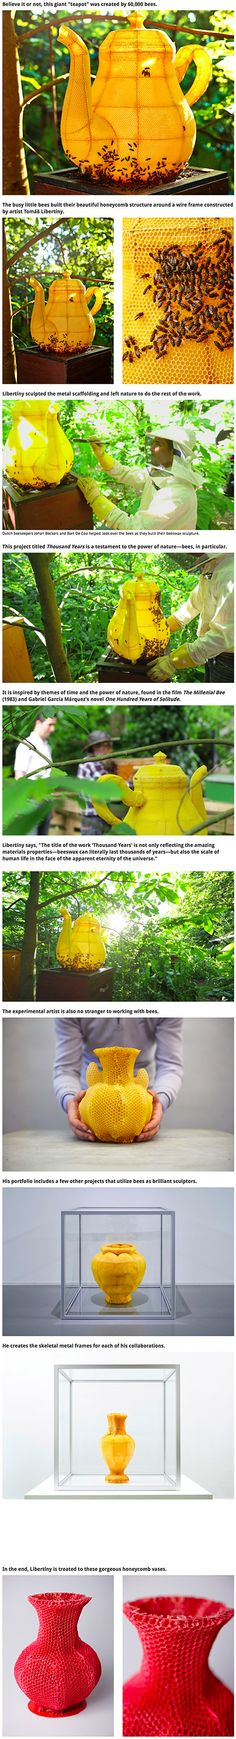 Designer Tomáš Gabzdil Libertíny of Studio Libertiny collaborated with an army of bees to complete Thousand Years, his latest experimental beeswax sculpture. Commissioned by the French fine silver manufacturer Christofle, the large teapot-shaped vessel was created with the help of Dutch beekeeper Johan Beckers and his group of 60,000 bees.